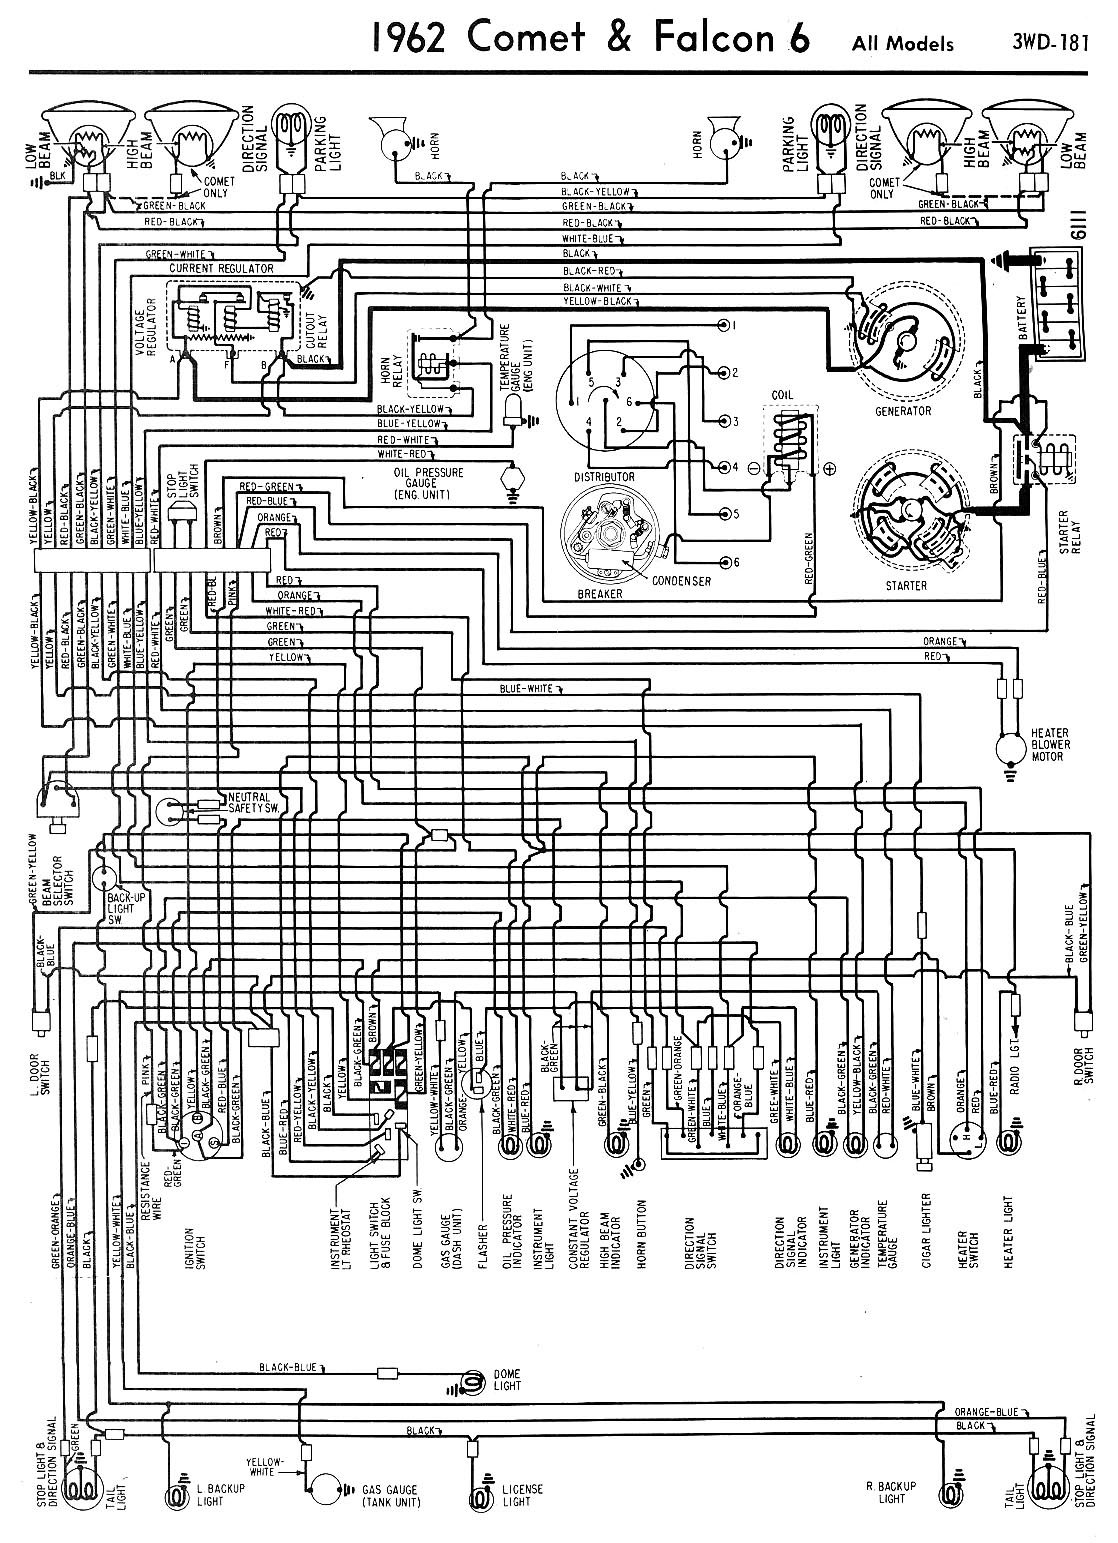 62 Falcon & Comet wiring - Drawing A. Complete wiring diagram for a 1963  Falcon